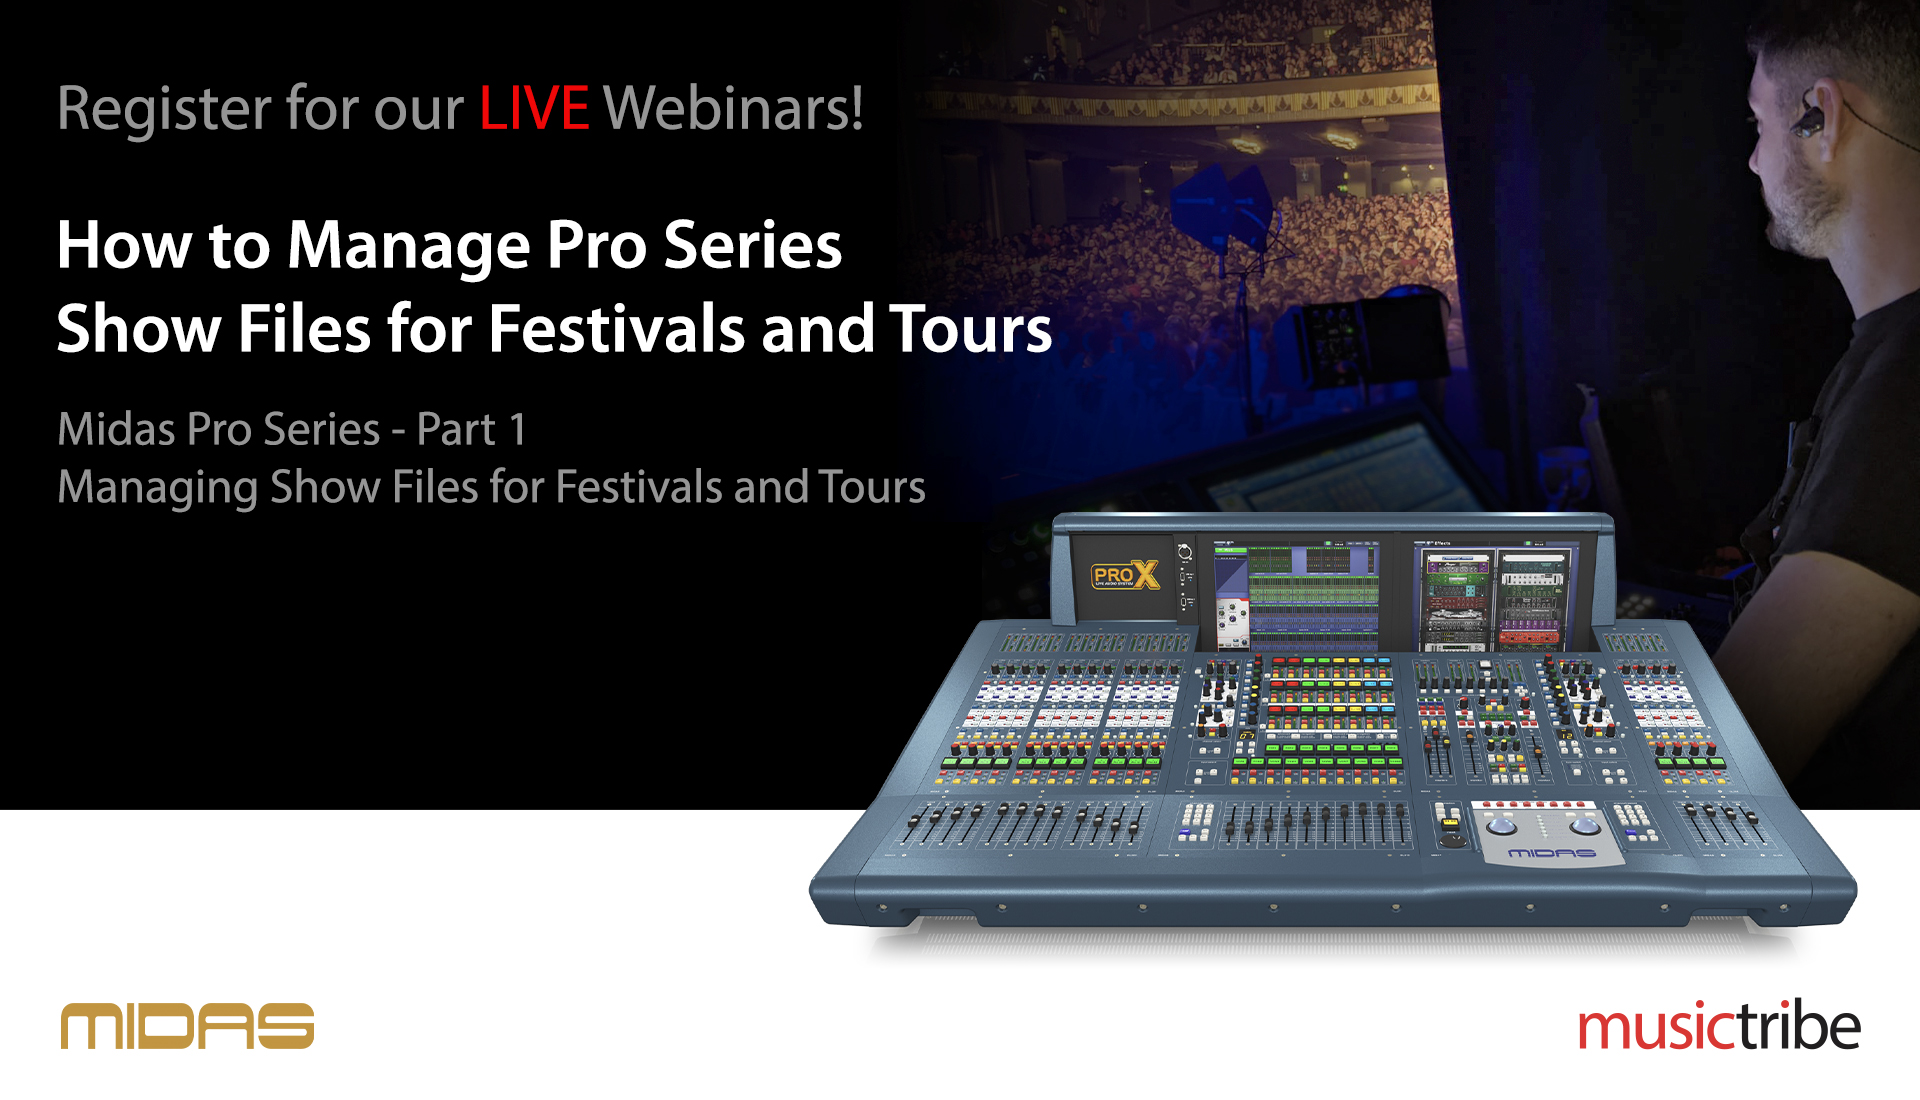 Midas LIVE Webinar: How To Manage Pro Series Show Files for Festivals and Tours